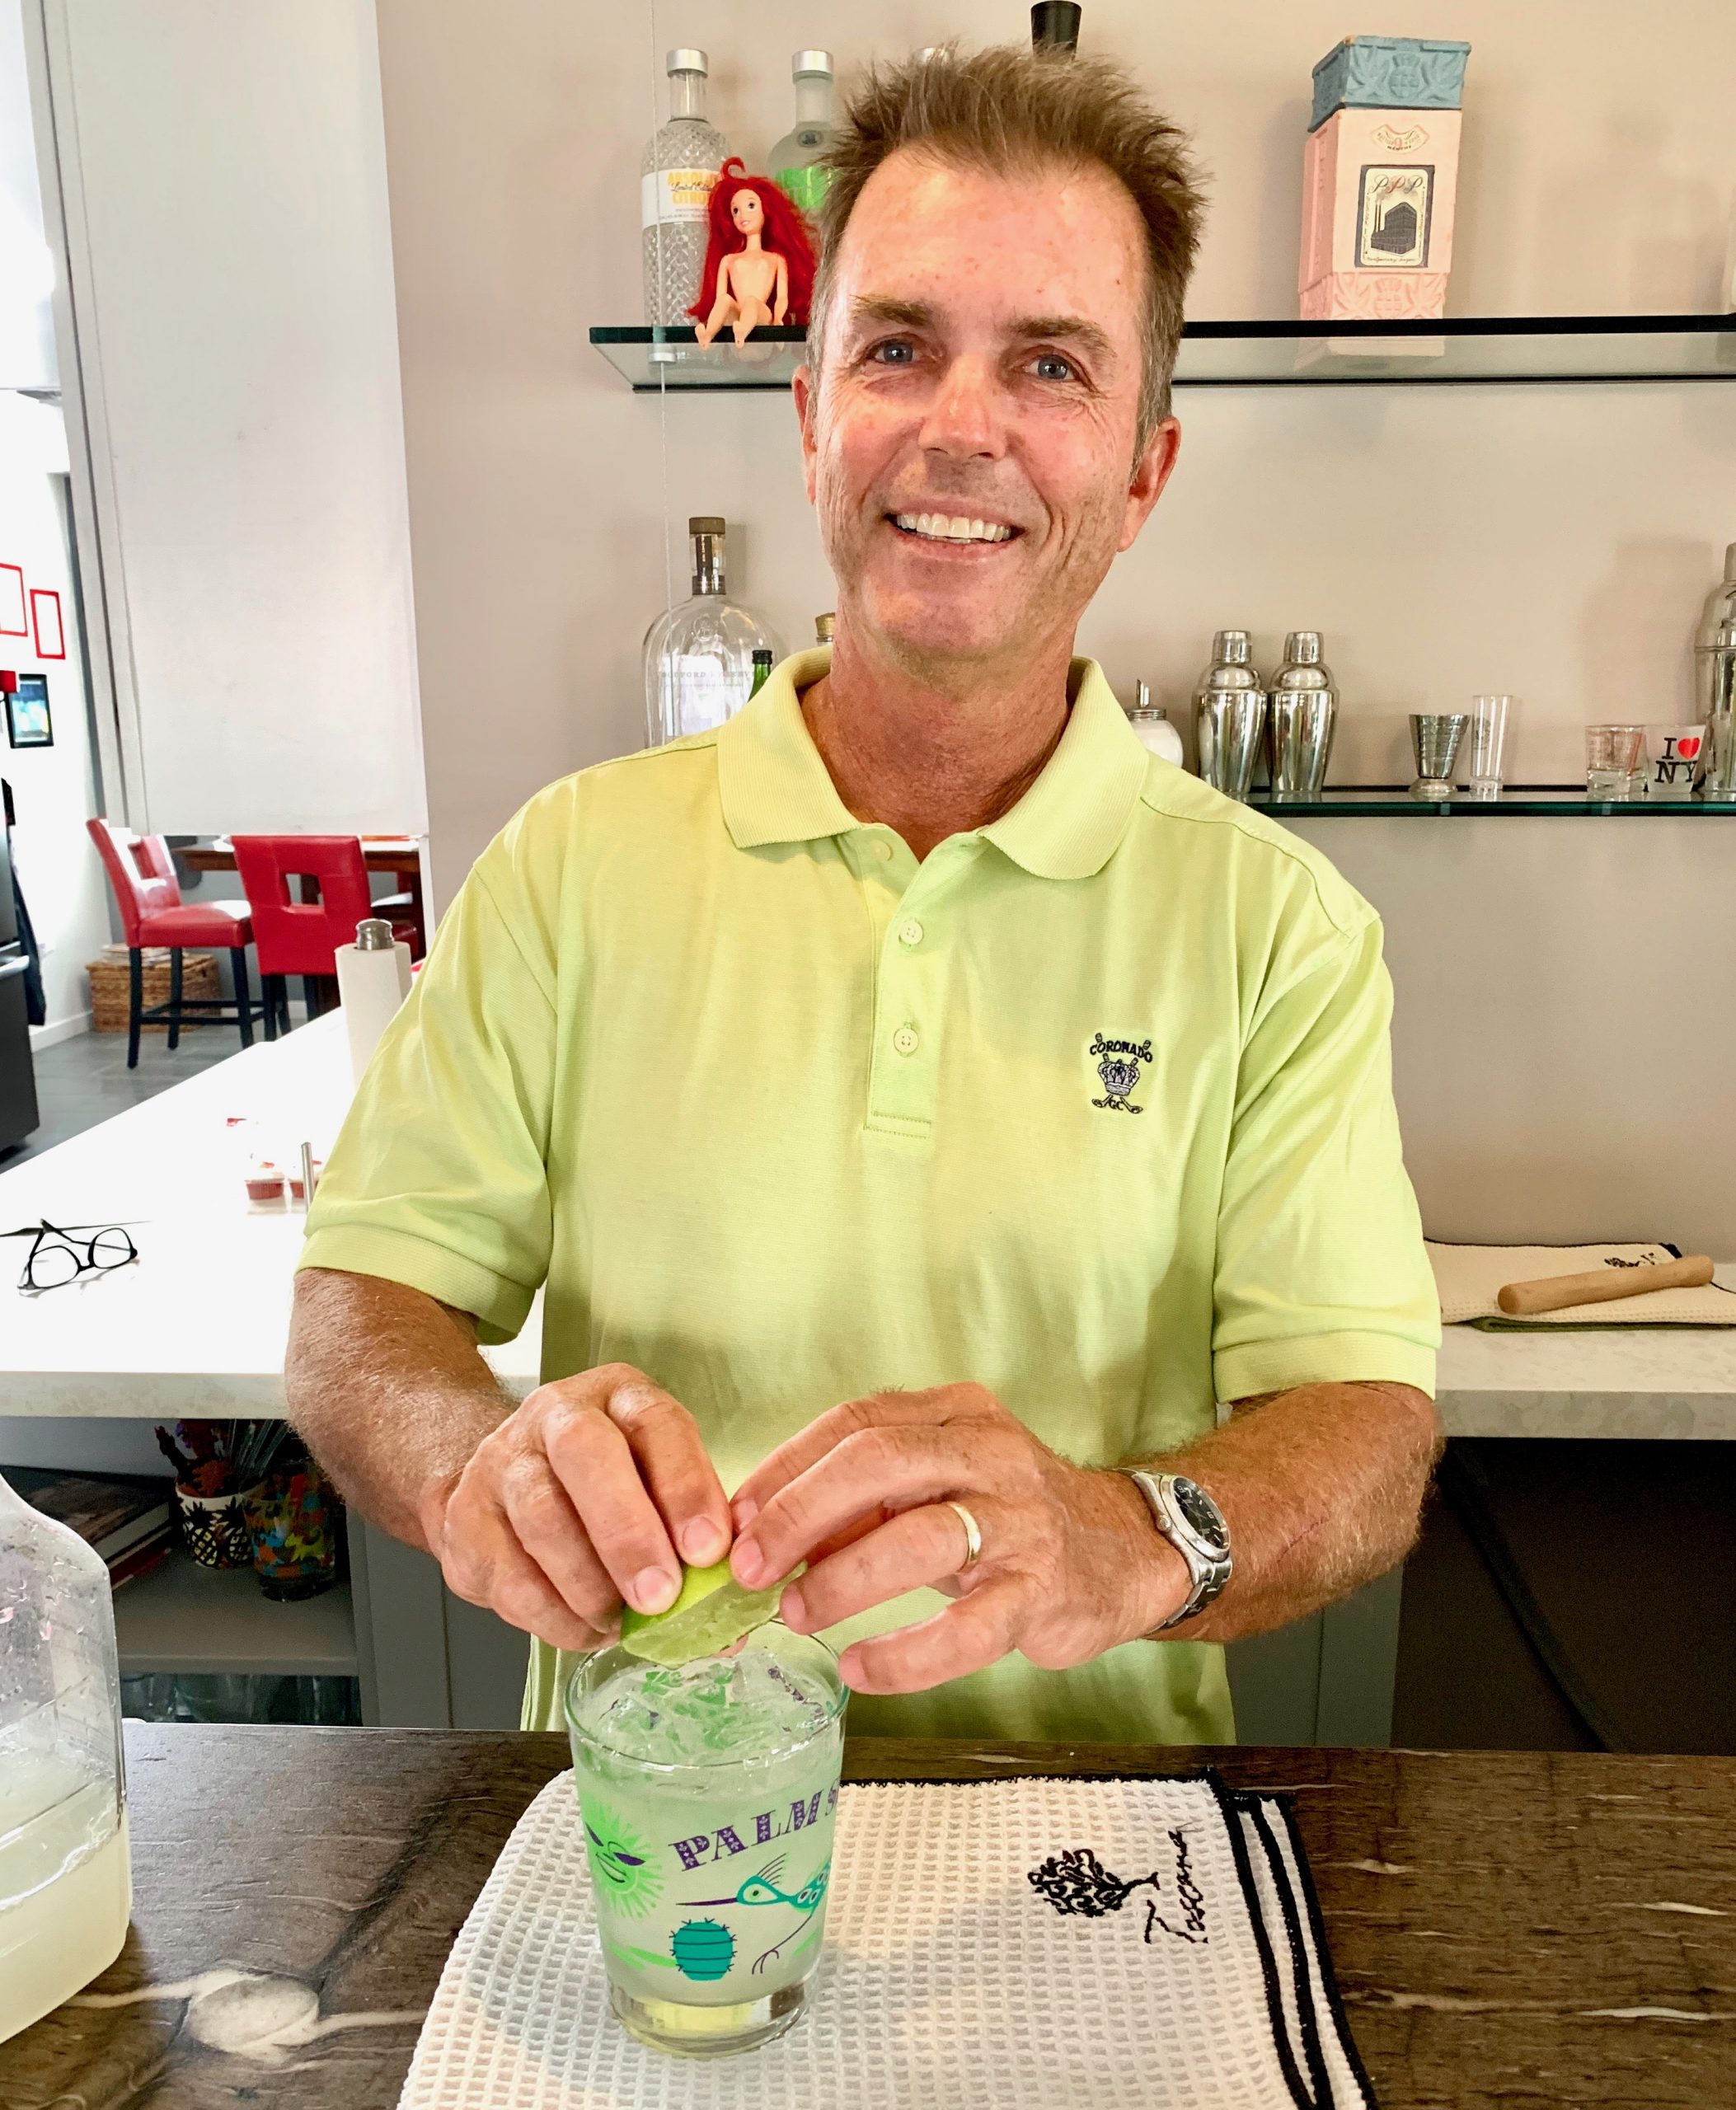 Man at his home bar smiling at camera as he squeezes a fresh lime into his freshly made margarita